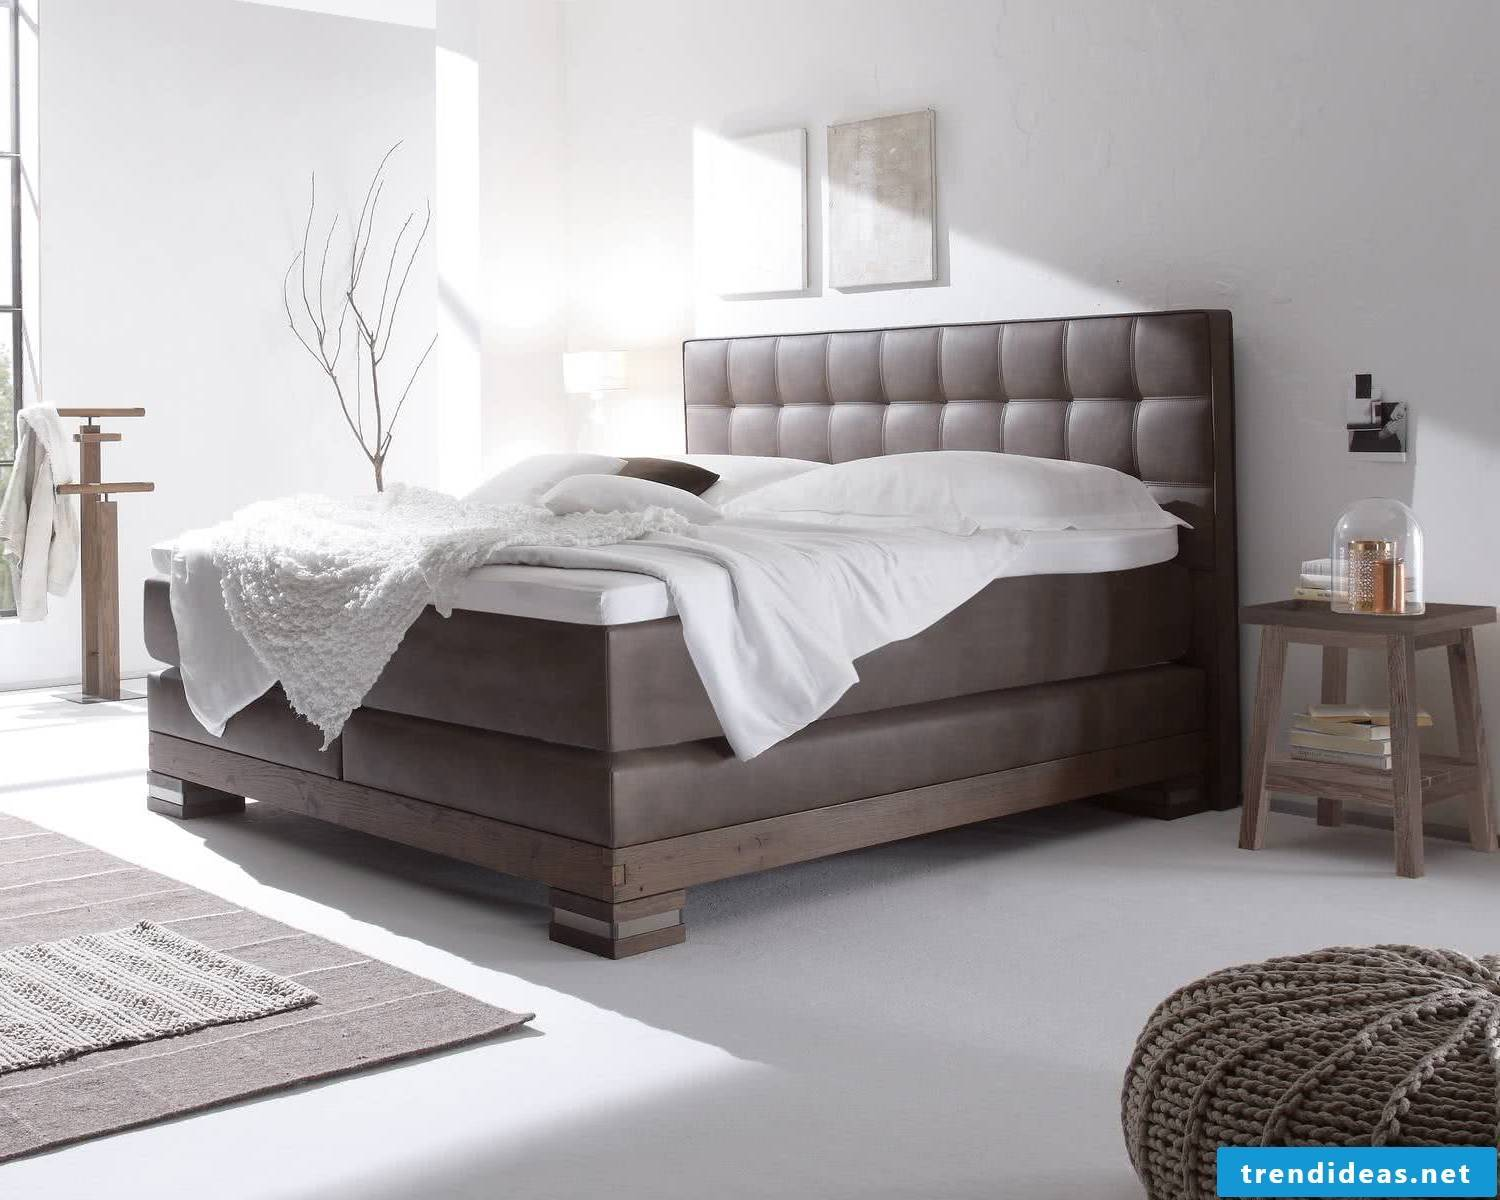 Box spring bed - the best for allergy sufferers